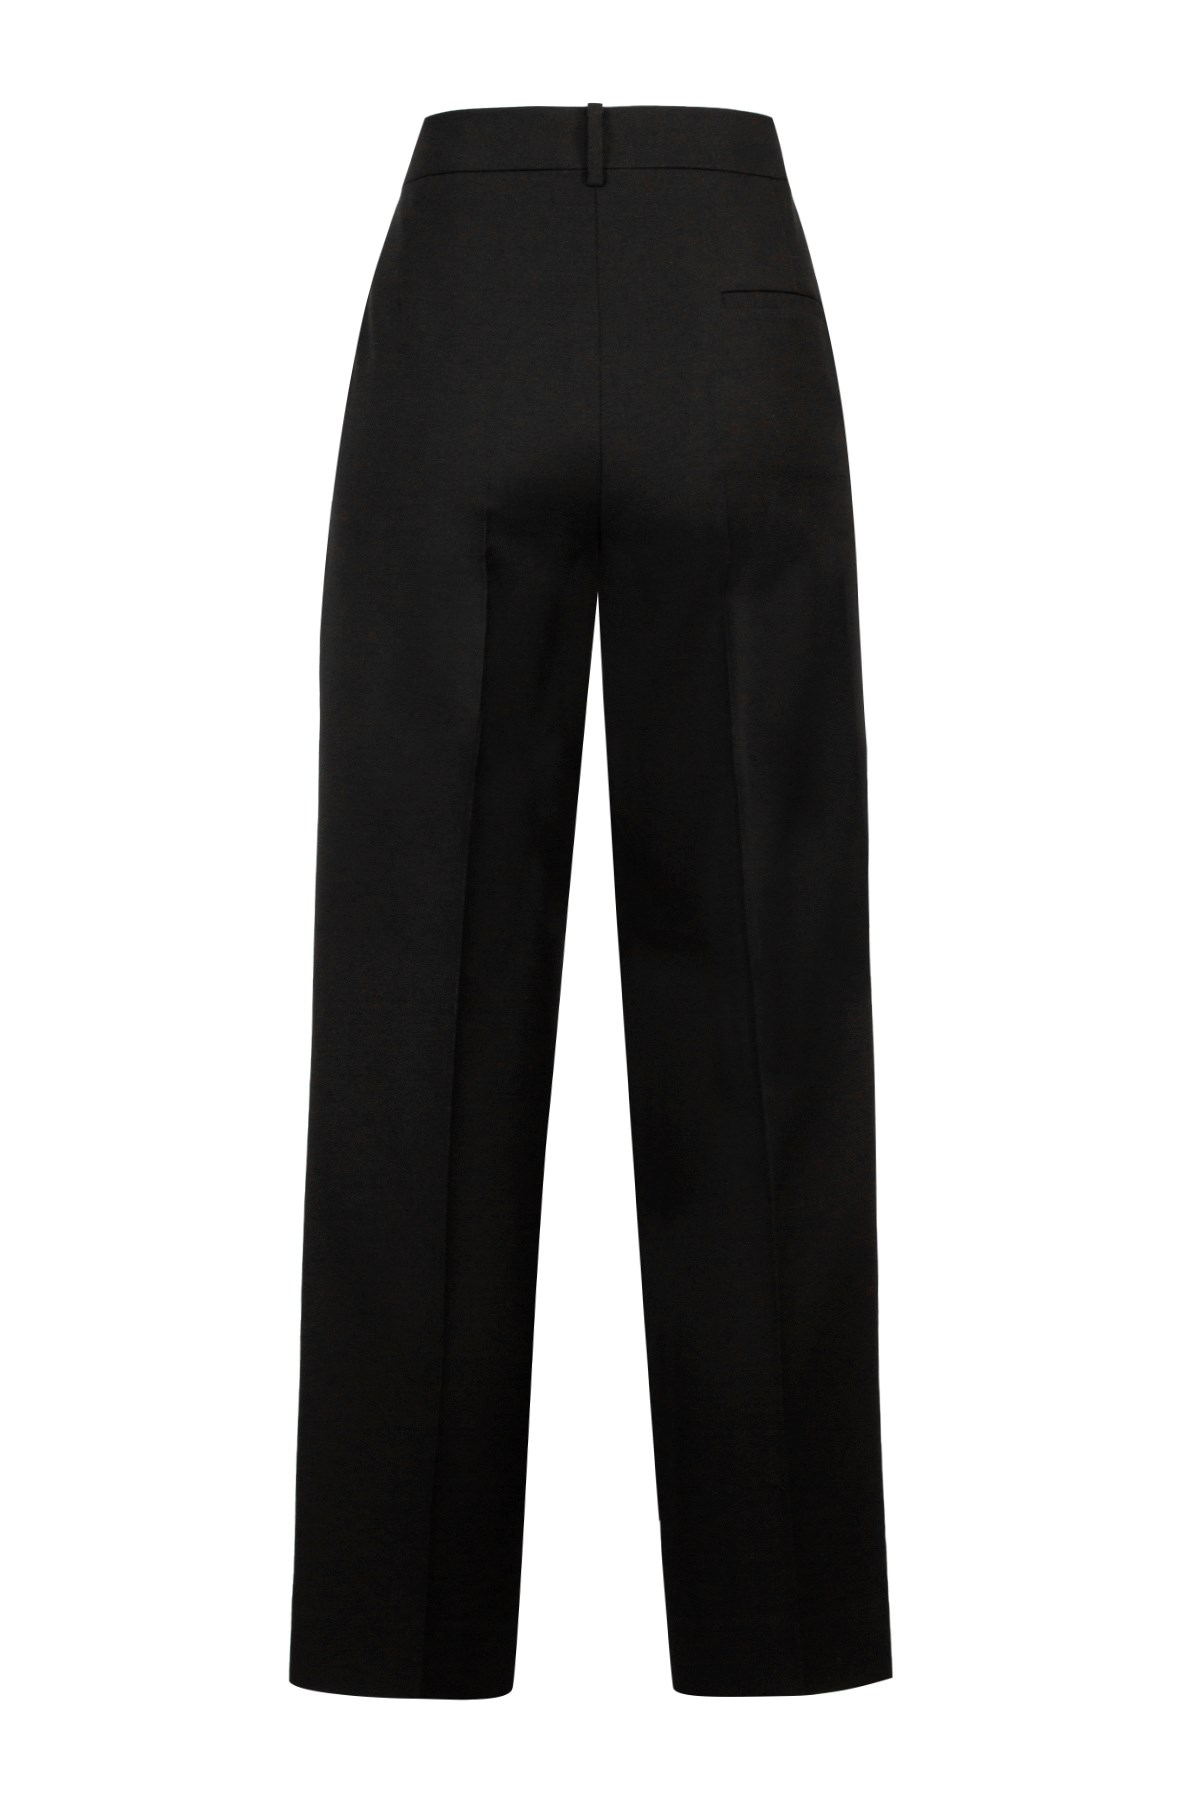 loewe Central fold wool pants available on www.julian-fashion.com - 122510  - BE